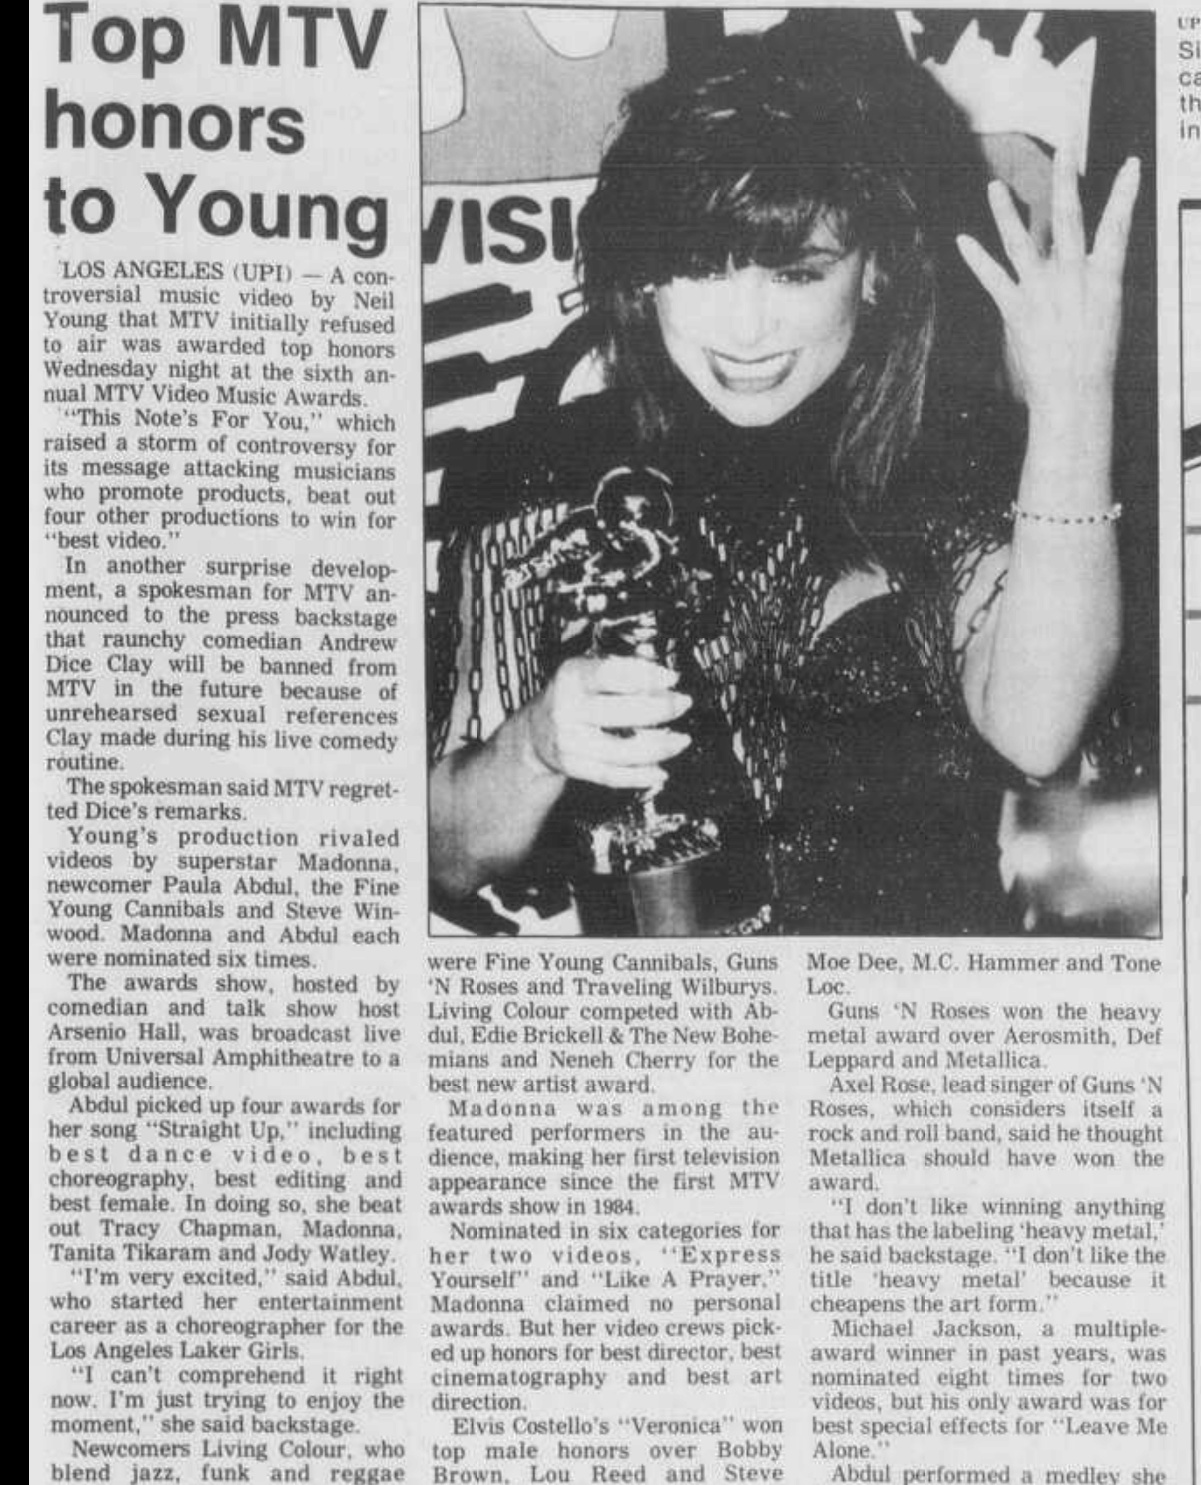 1989.09.08 - Los Angeles Times - Feud Between Rockers Boils Over Backstage at MTV Awards Dixon_10